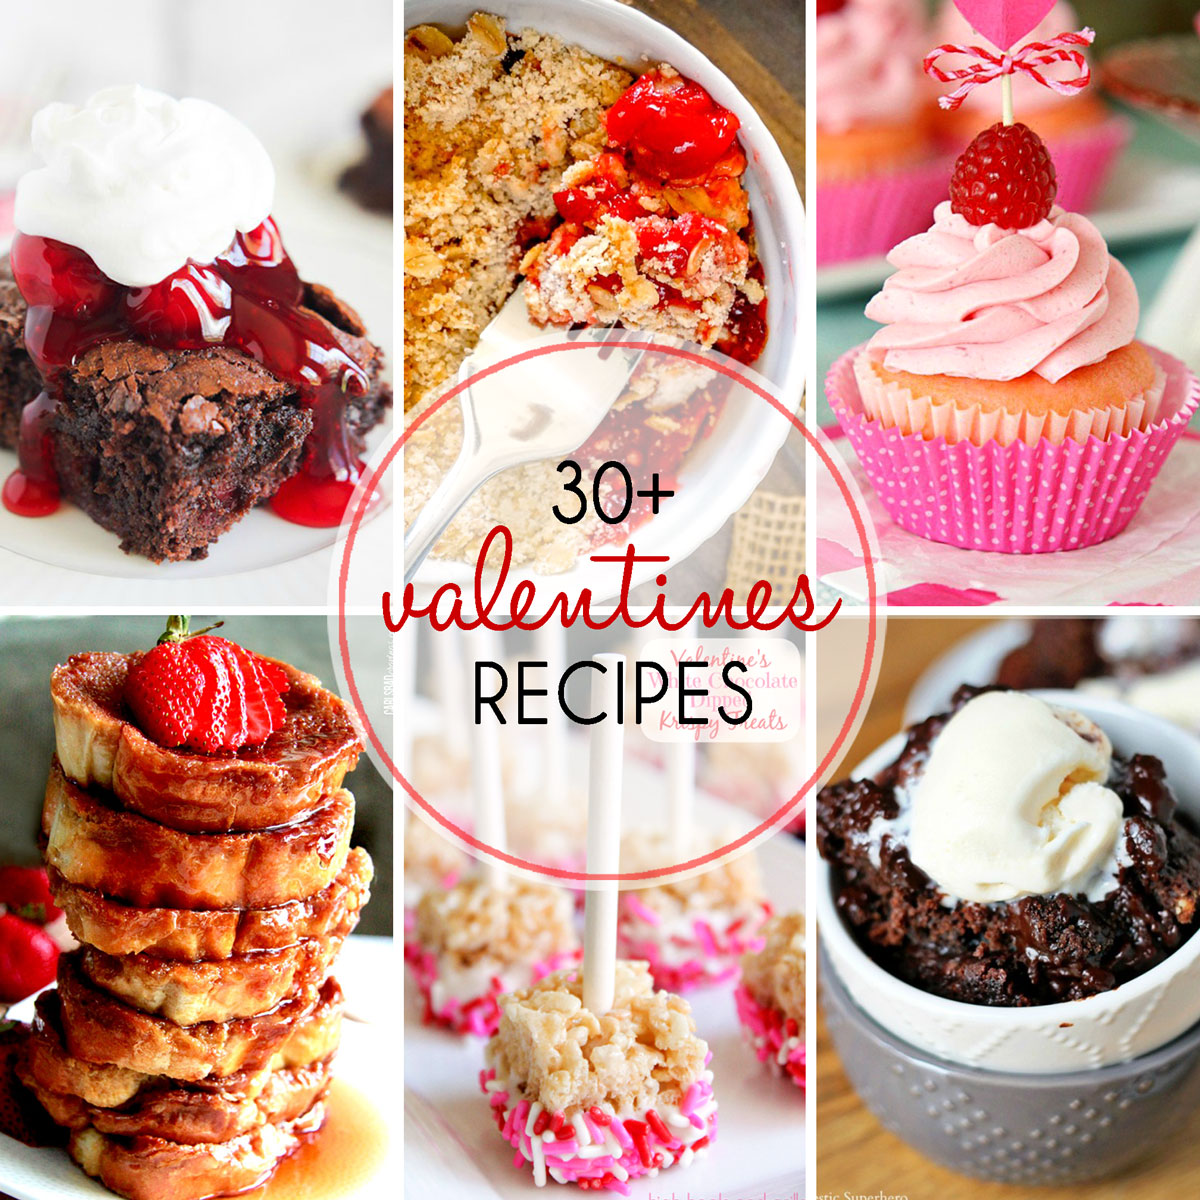 With these 30+ Valentine's Day desserts, you will have a difficult time trying to decide which one to make.